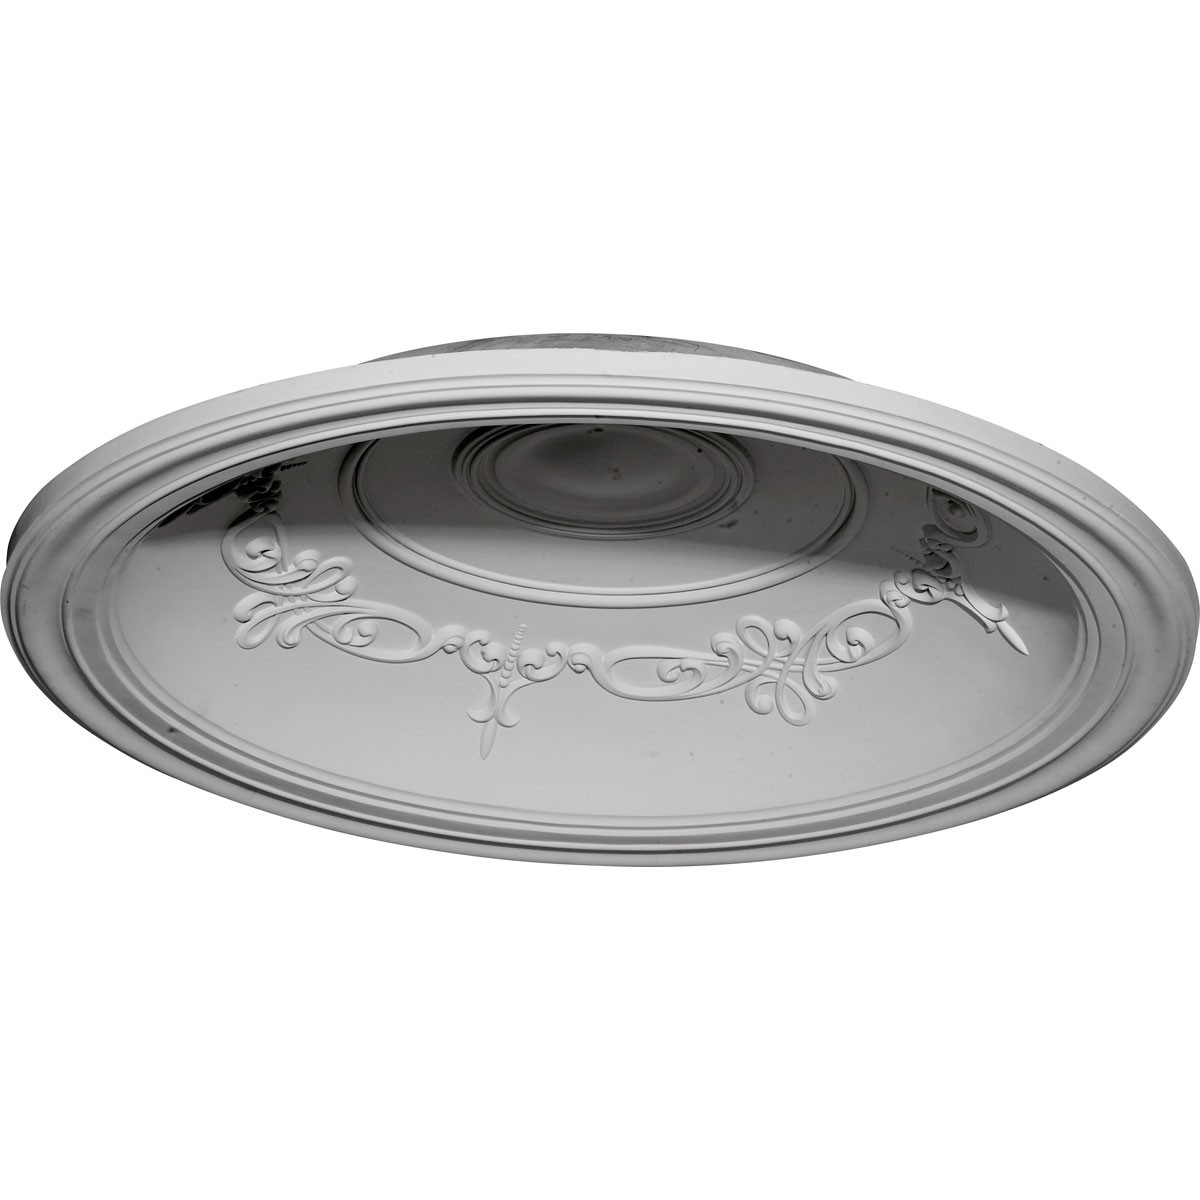 "EM-DOME35CH - 35""OD x 27 7/8""ID x 5 5/8""D Chesterfield Recessed Mount Ceiling Dome (29 1/2""Diameter x 6 5/8""D Rough Opening)"